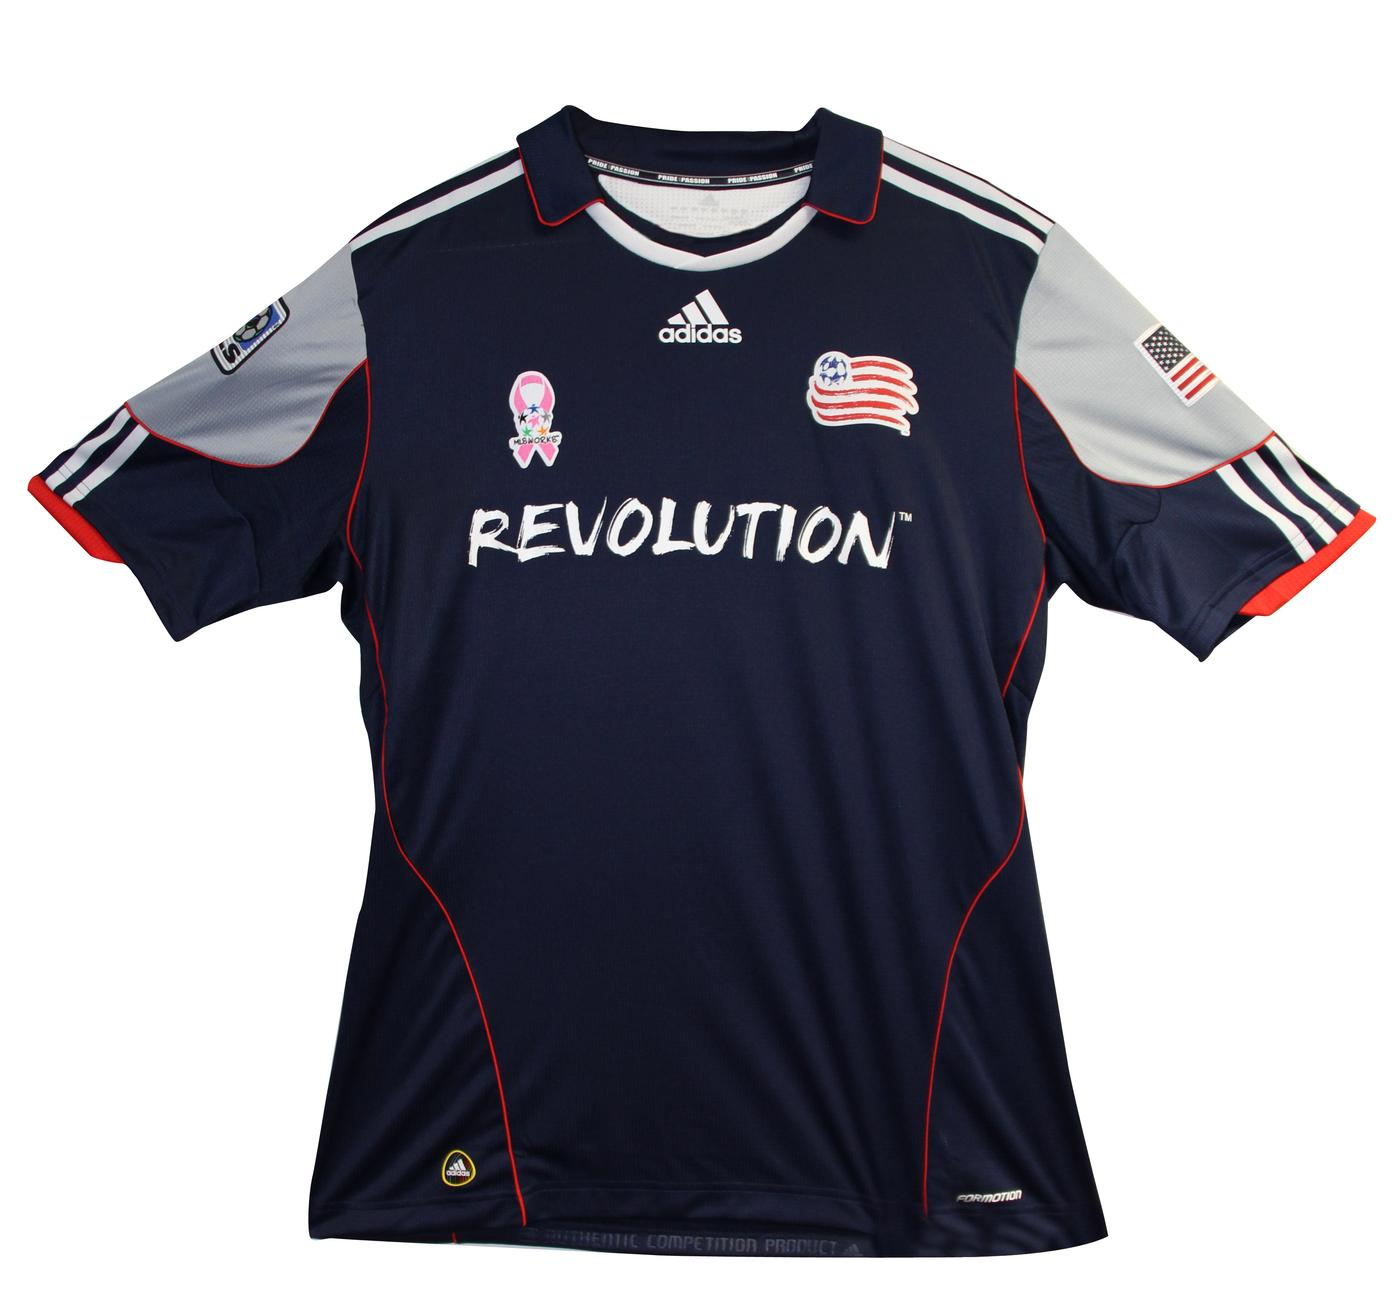 The Revolution's jerseys will feature pink ribbons on Saturday night